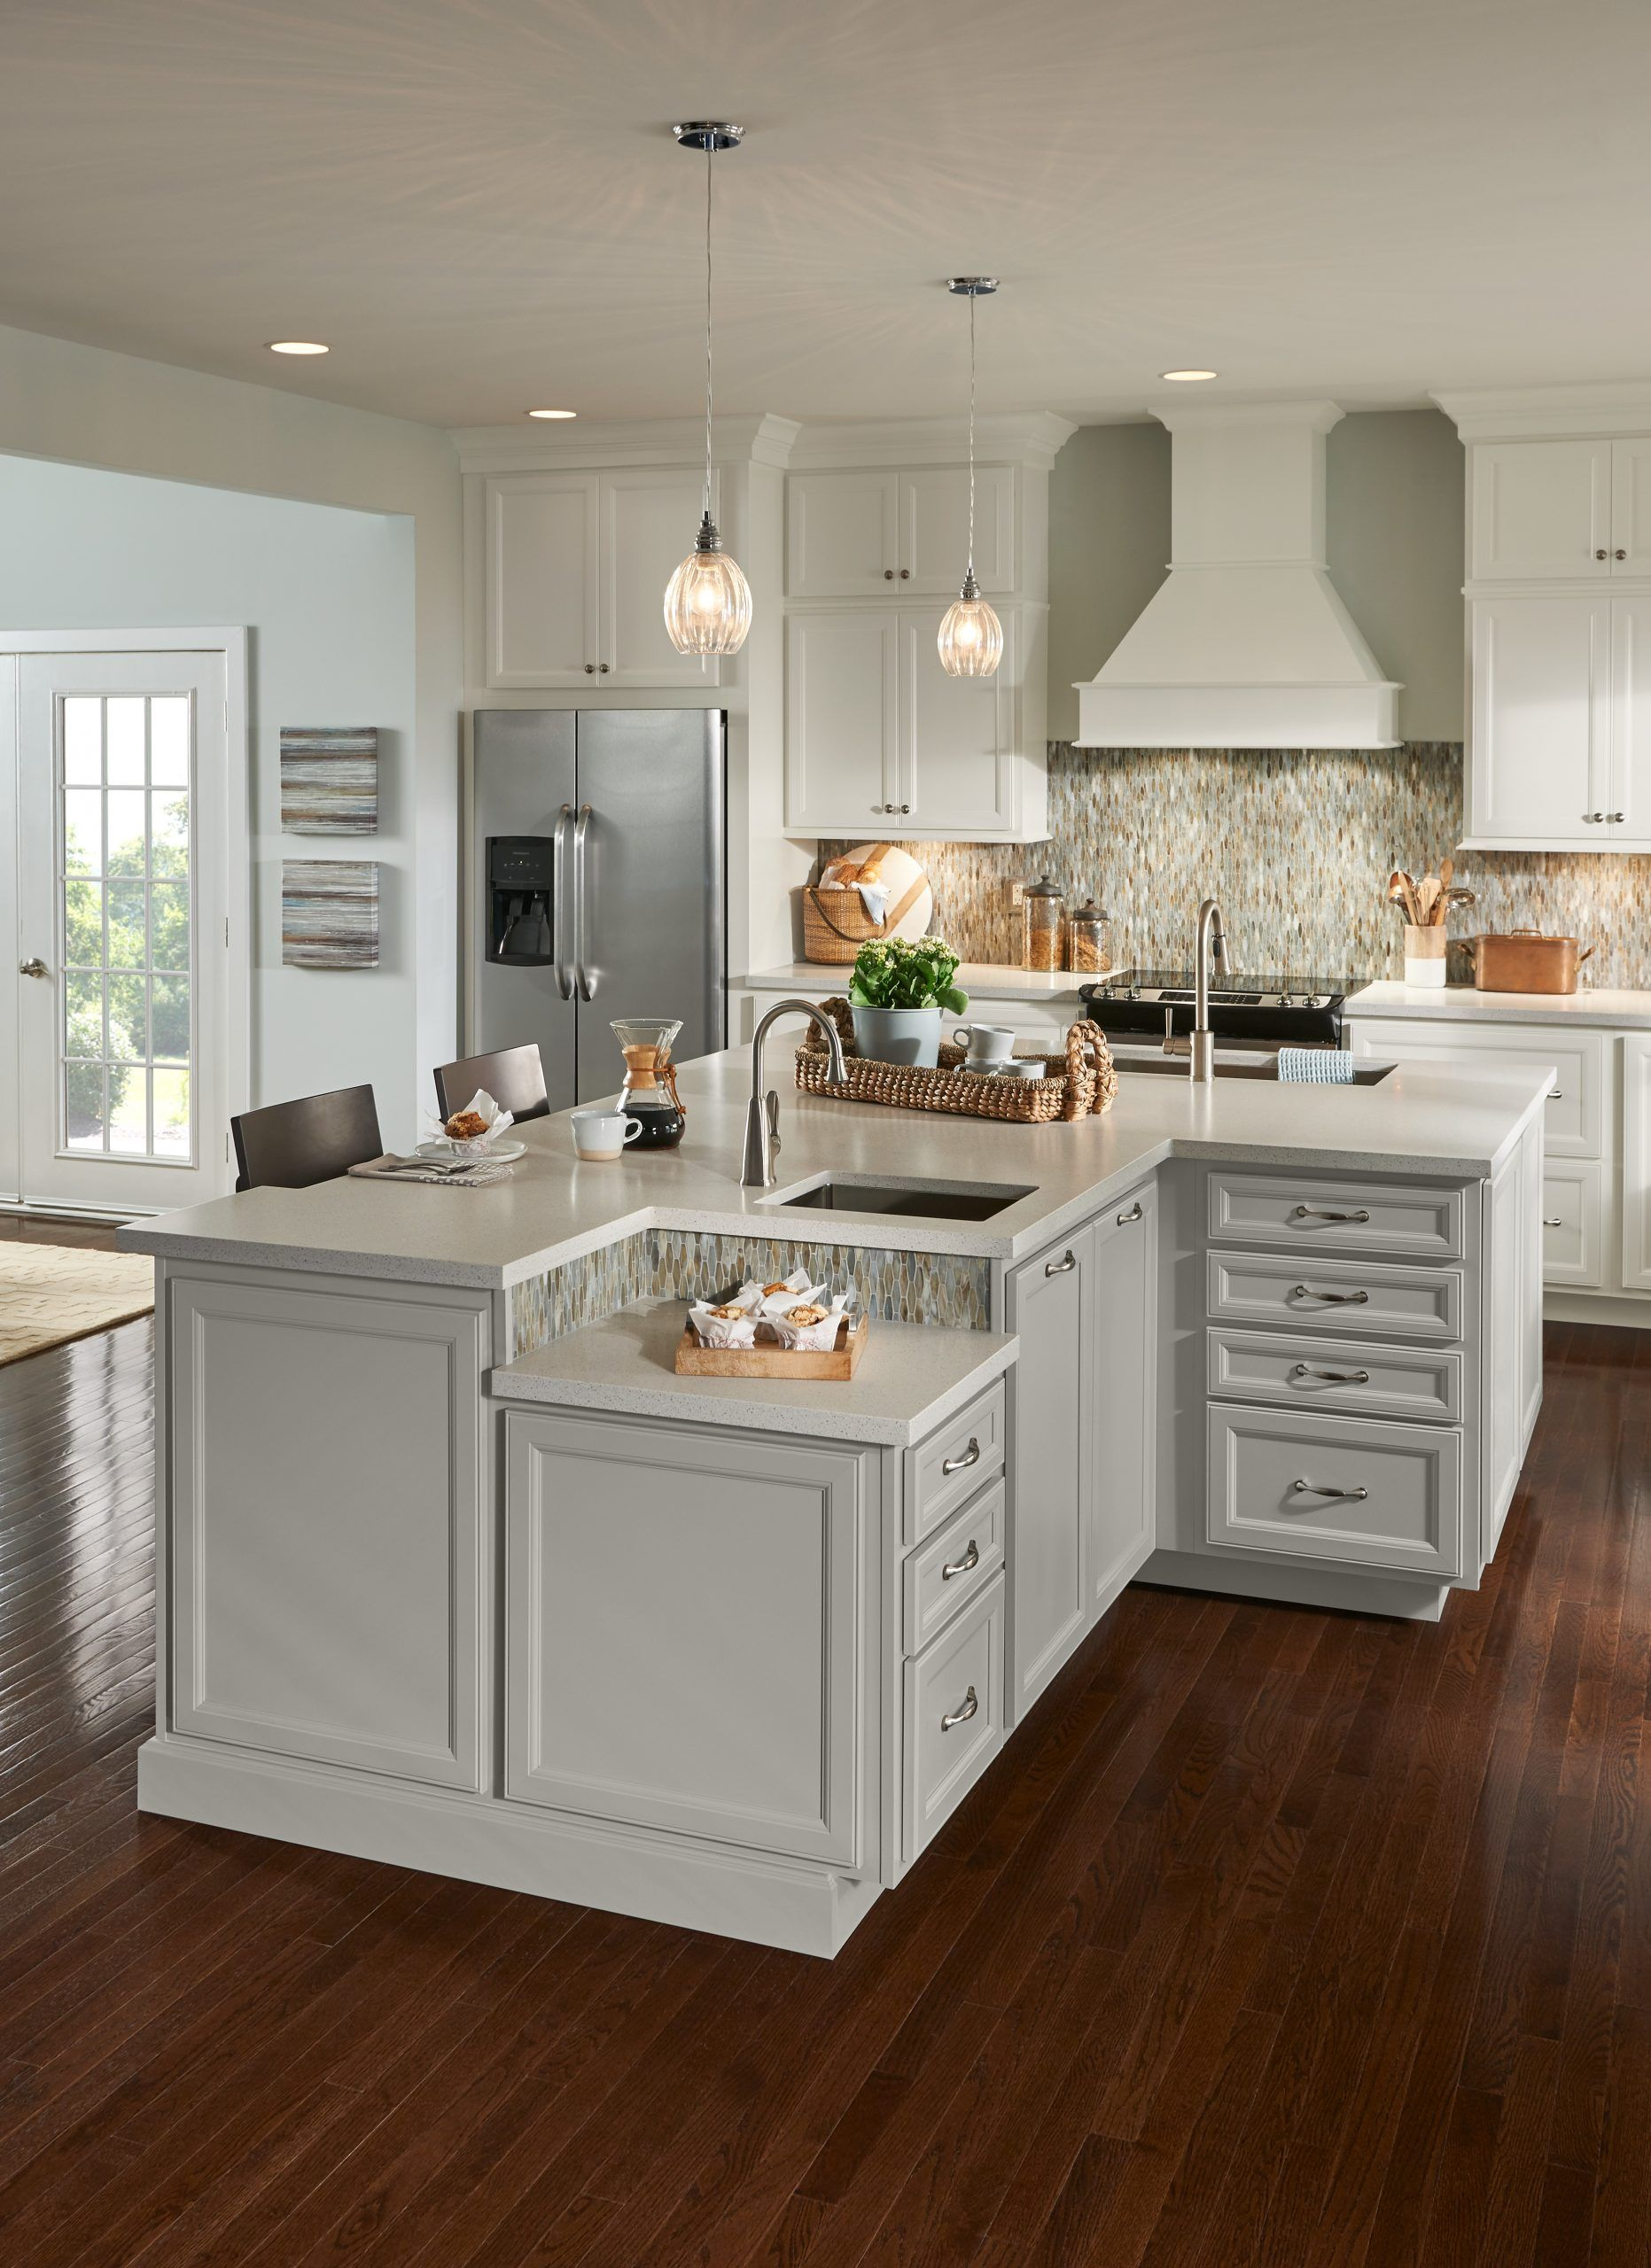 Kitchen Cabinet Ideas American Woodmark Cabinets In 2020 Cost Of Kitchen Cabinets Kitchen Cabinets Home Depot Custom Kitchen Cabinets